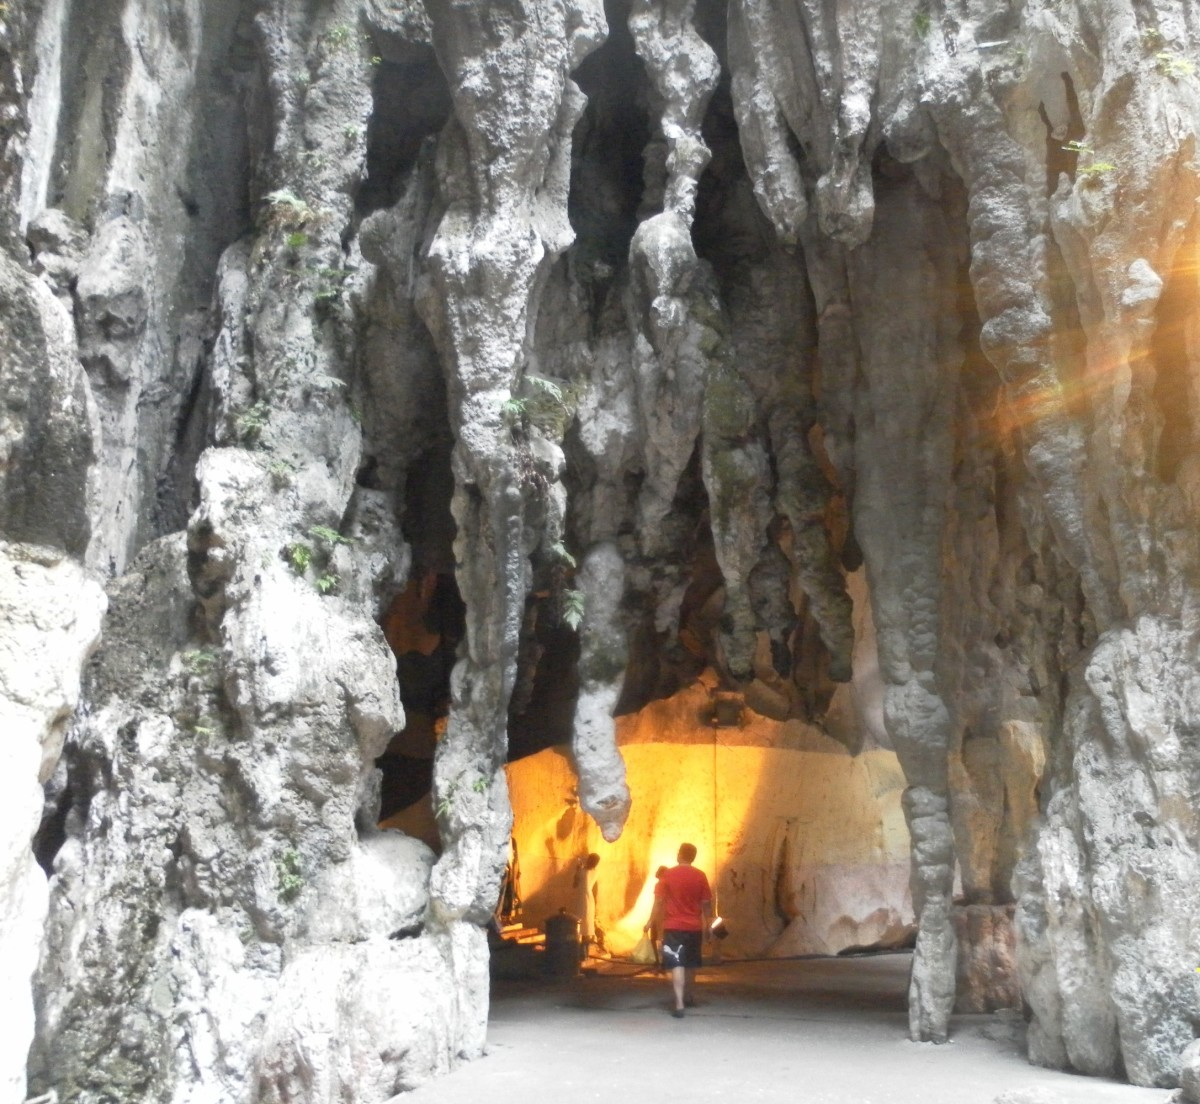 Rock formations inside Batu Caves. A small shrine stands in the lighted corner.